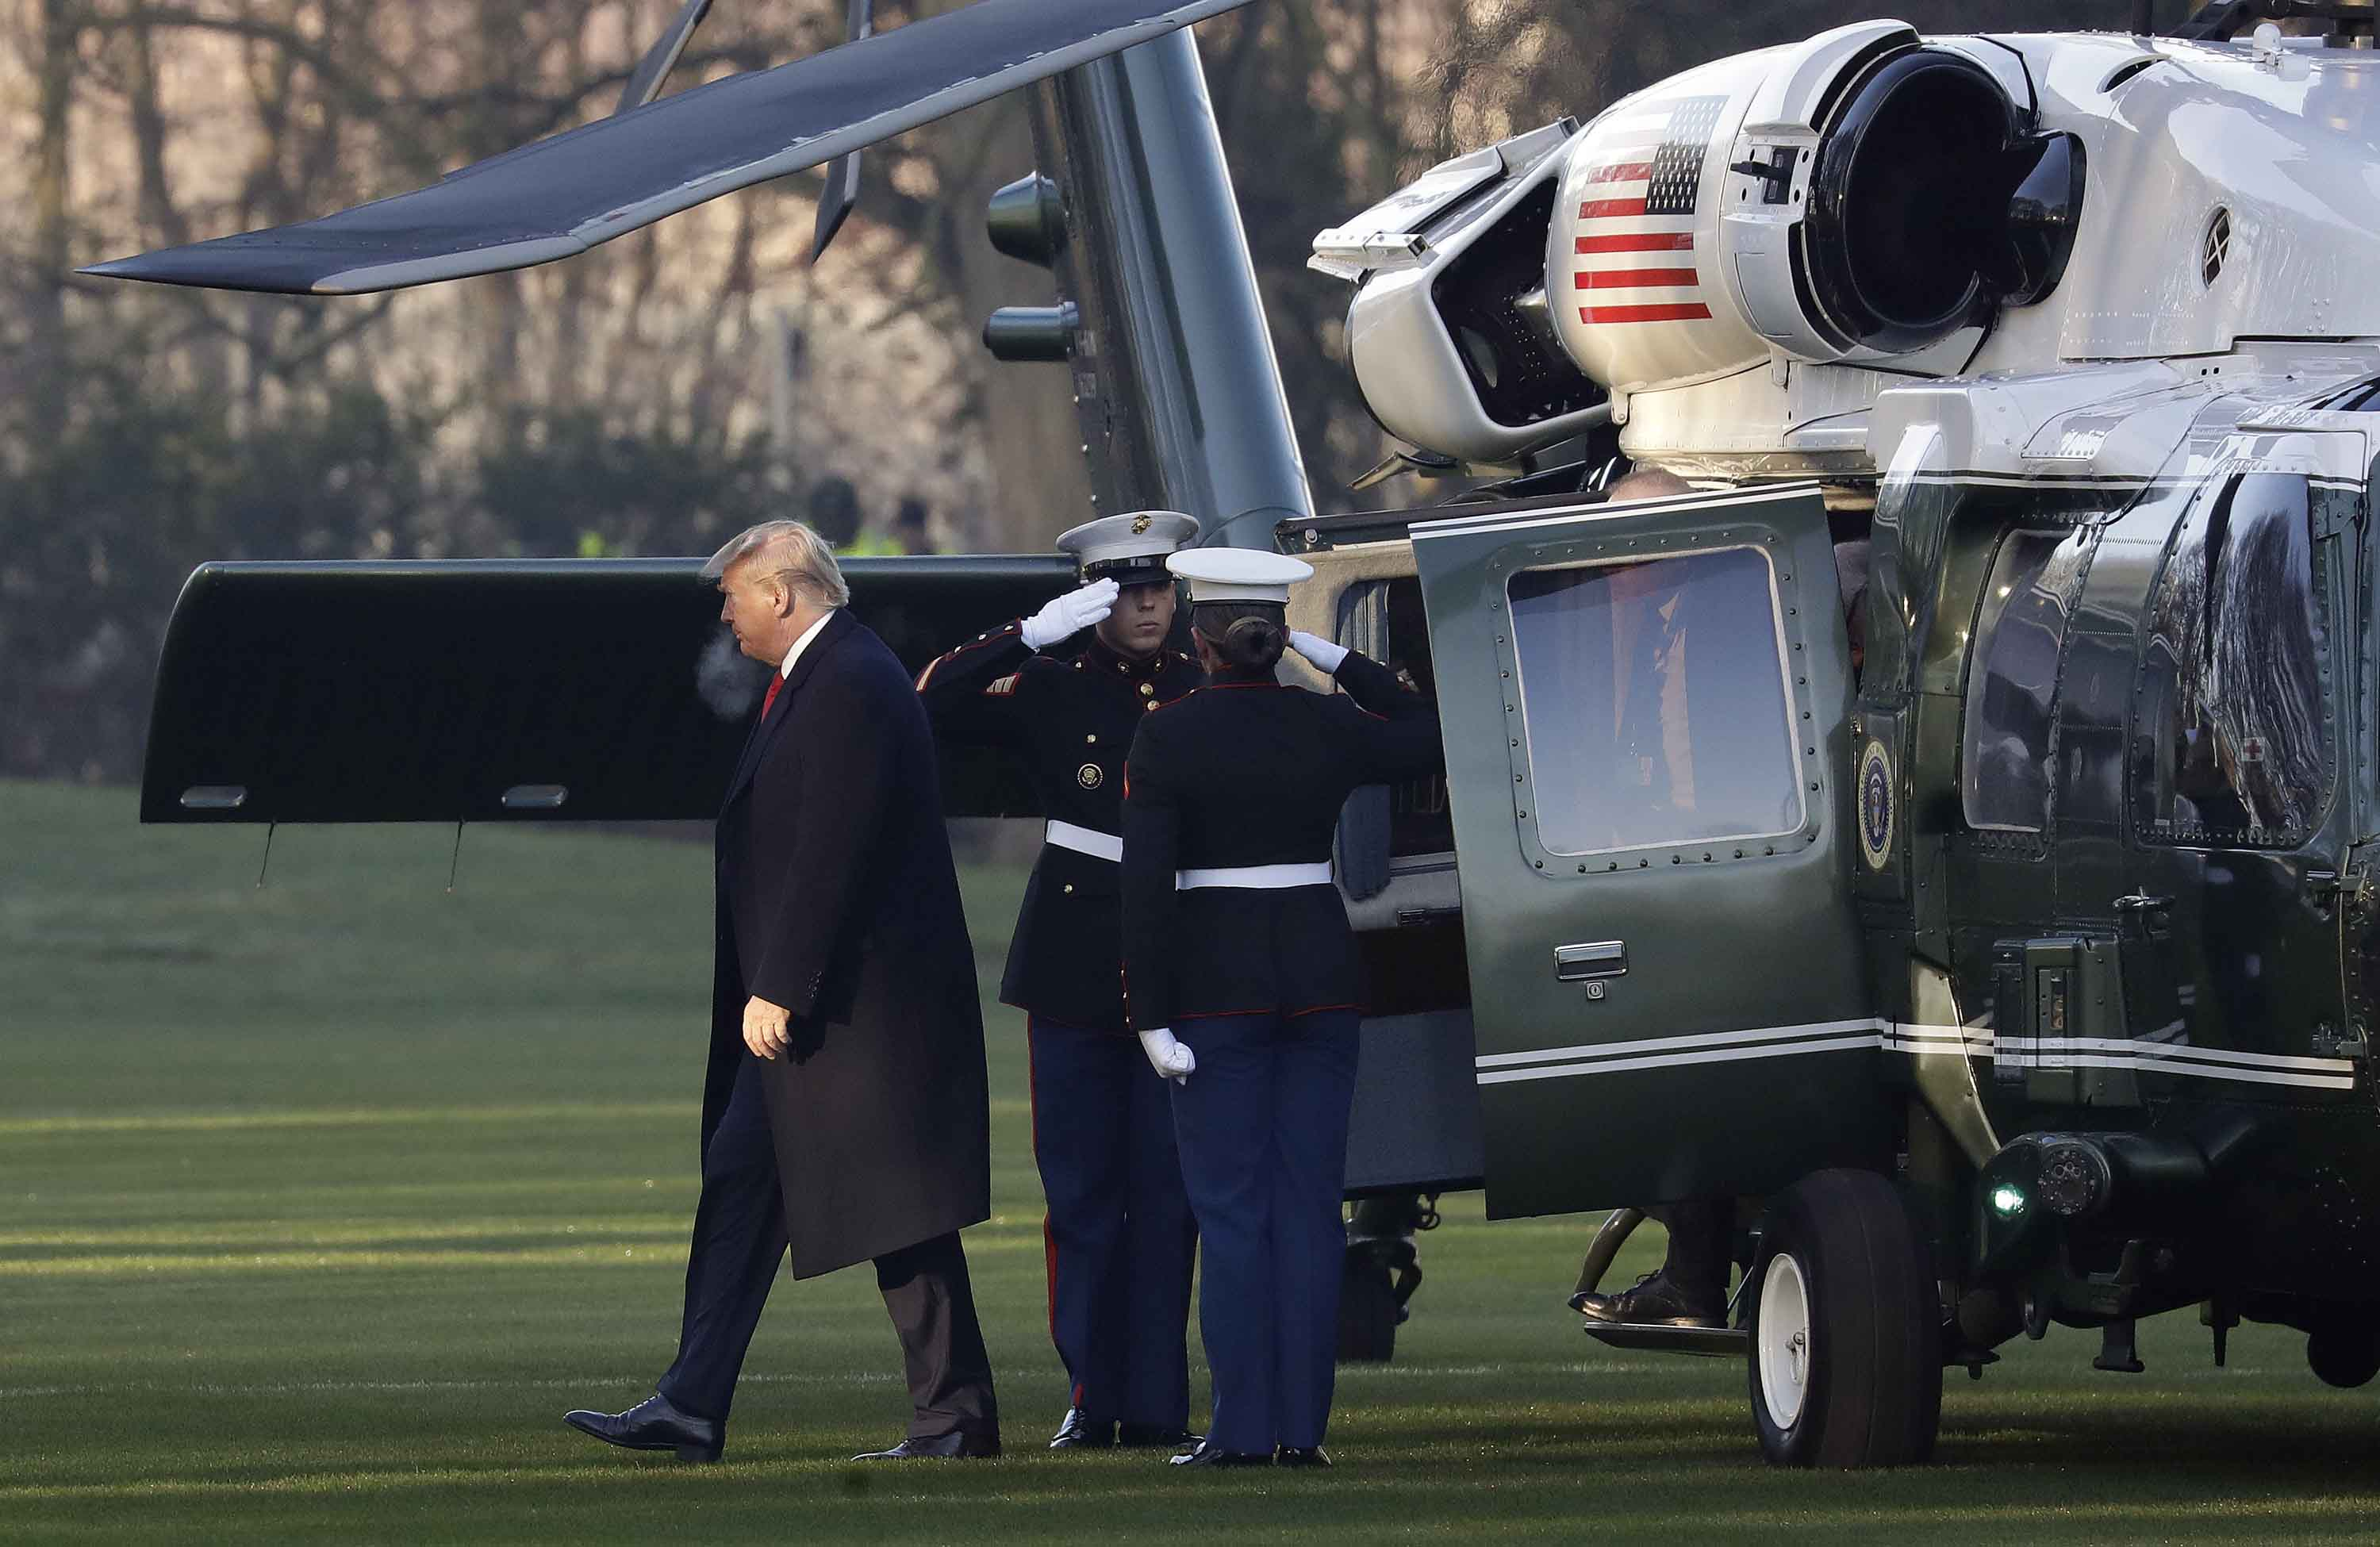 President Trump arrives at The Grove hotel and resort in Watford, Hertfordshire, England, Wednesday, December 4. Photo: Evan Vucci/AP